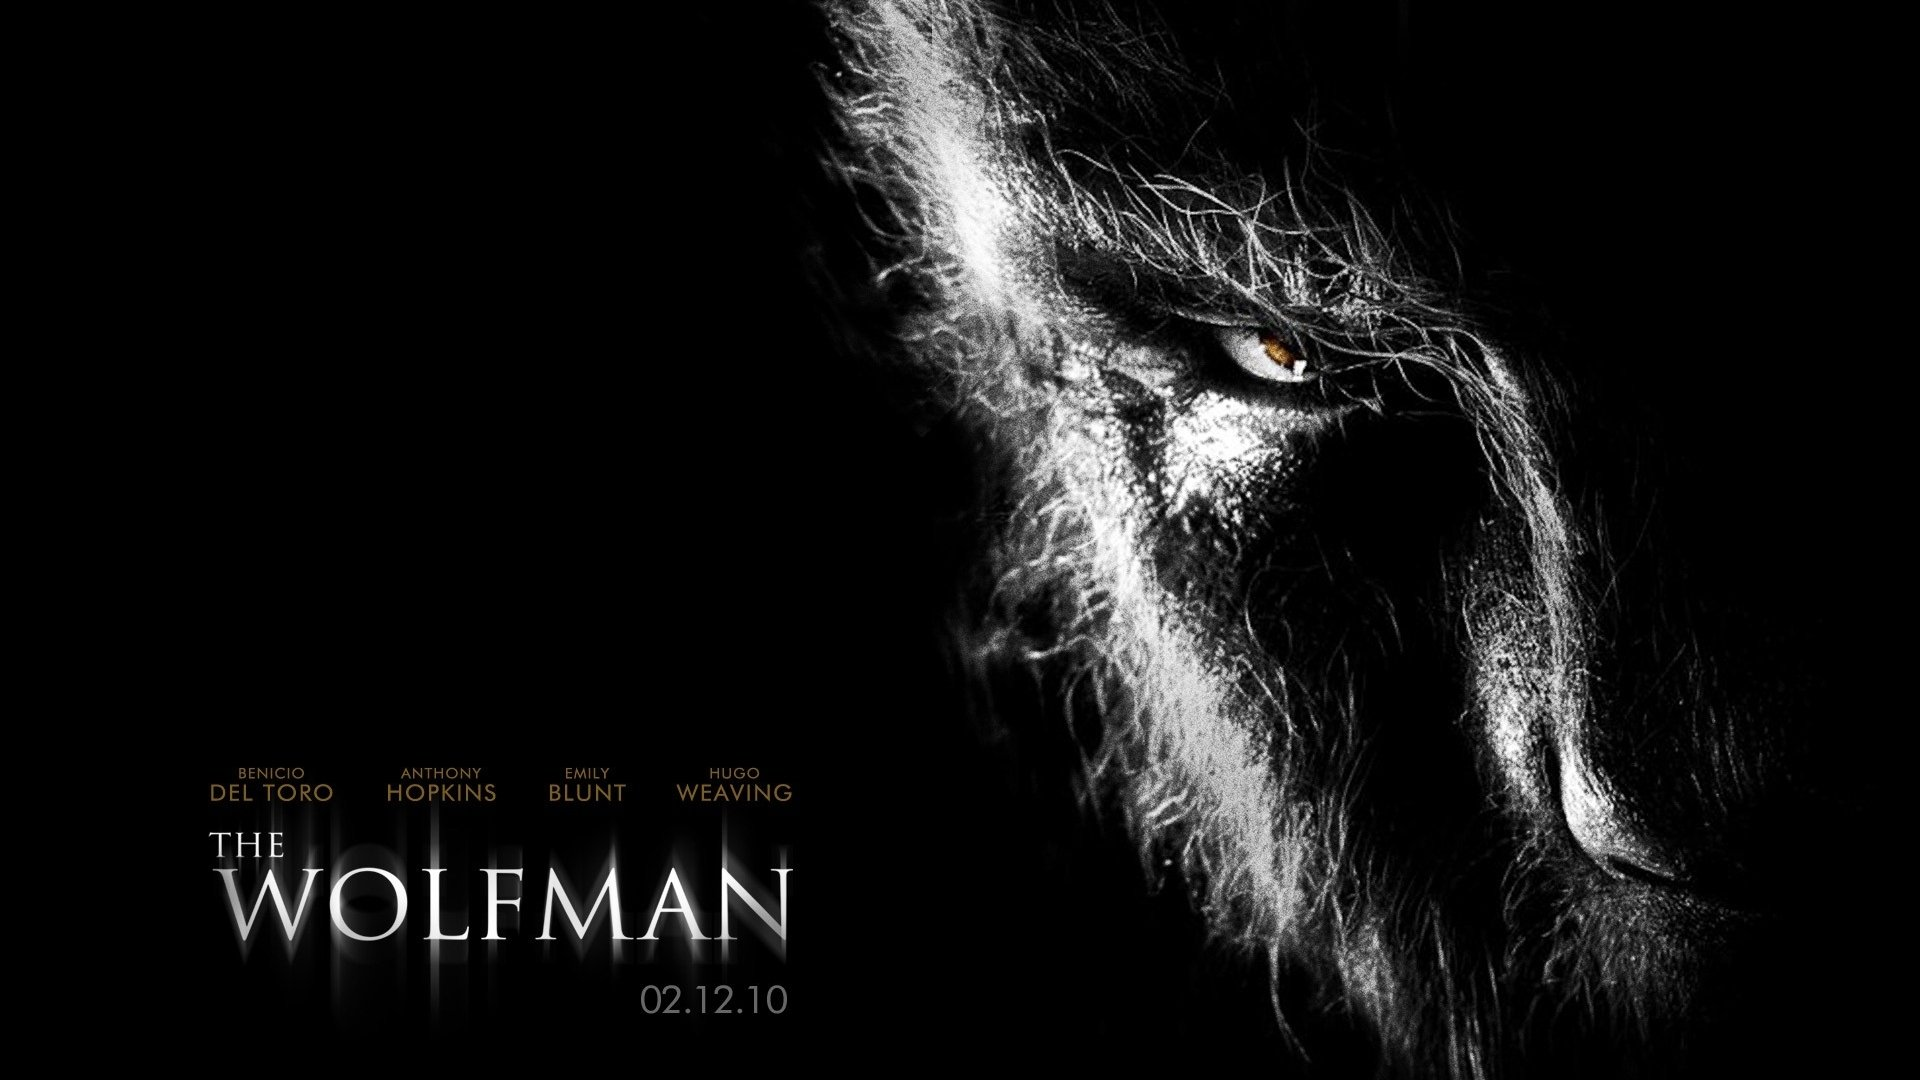 The Wolfman Hd Wallpaper Background Image 1920x1080 Id142648